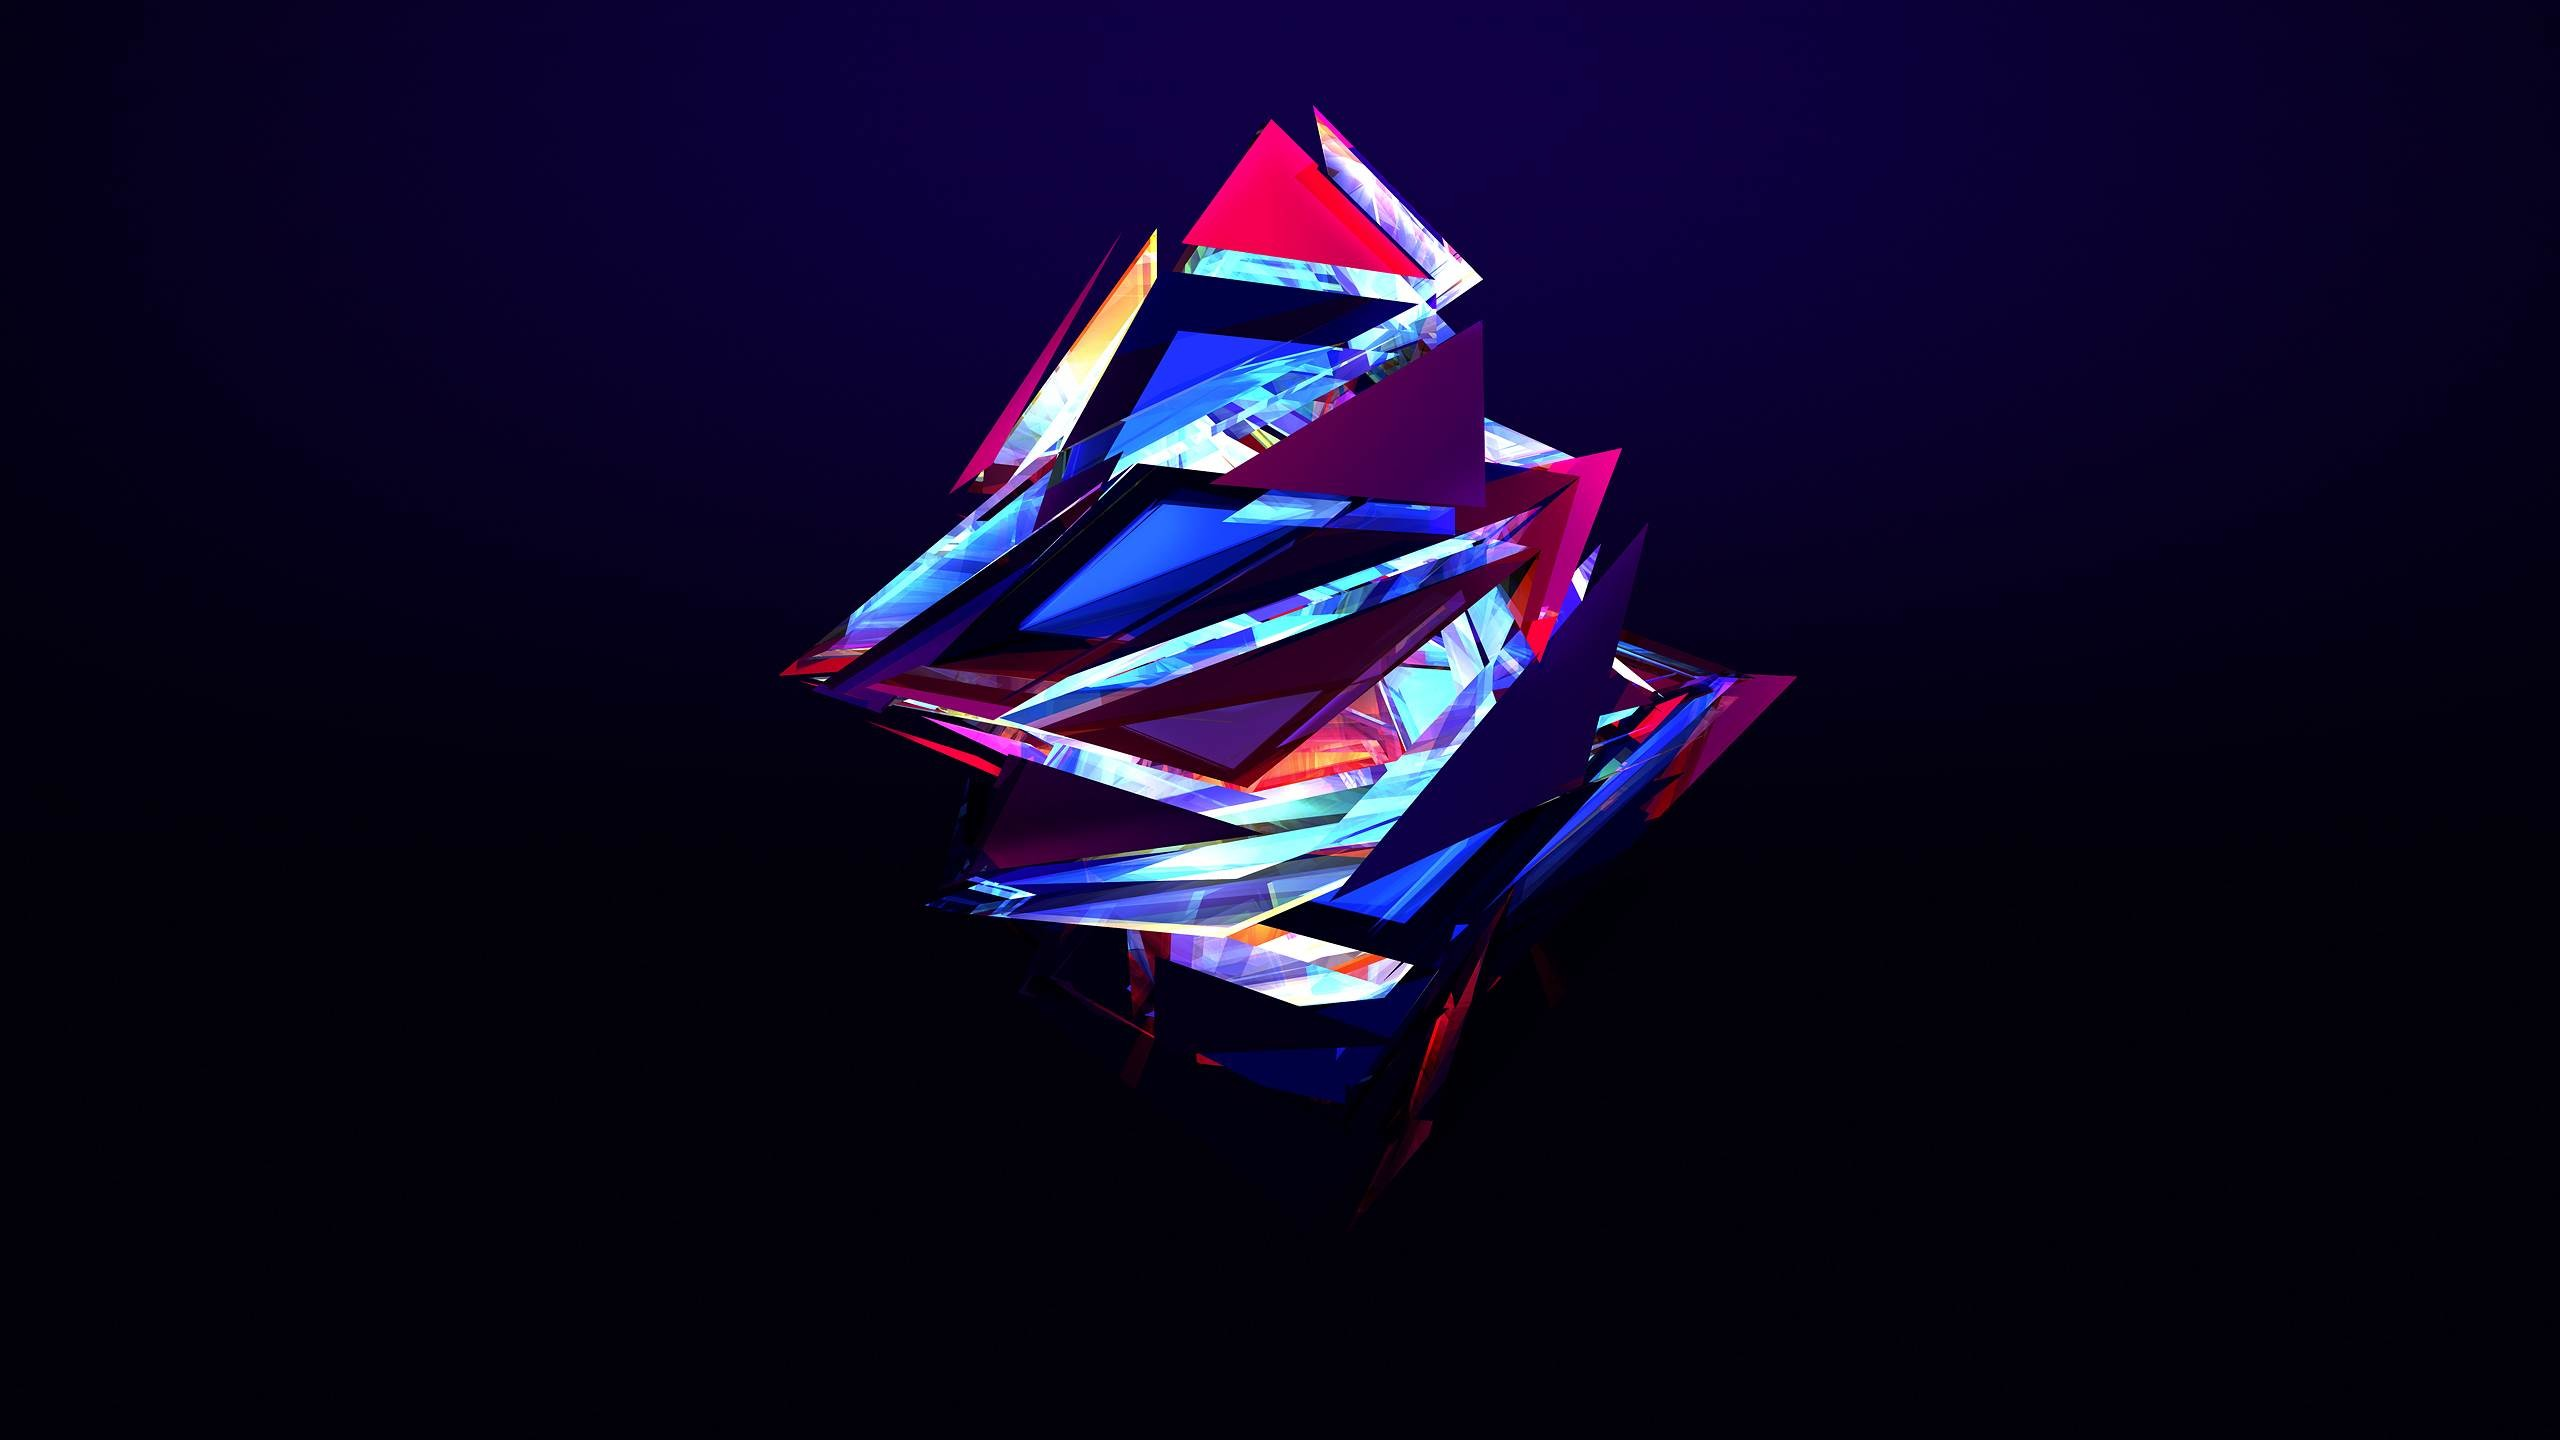 Facets HD Wallpapers Backgrounds Wallpaper Page 2560×1440 Facets Wallpaper    Adorable Wallpapers